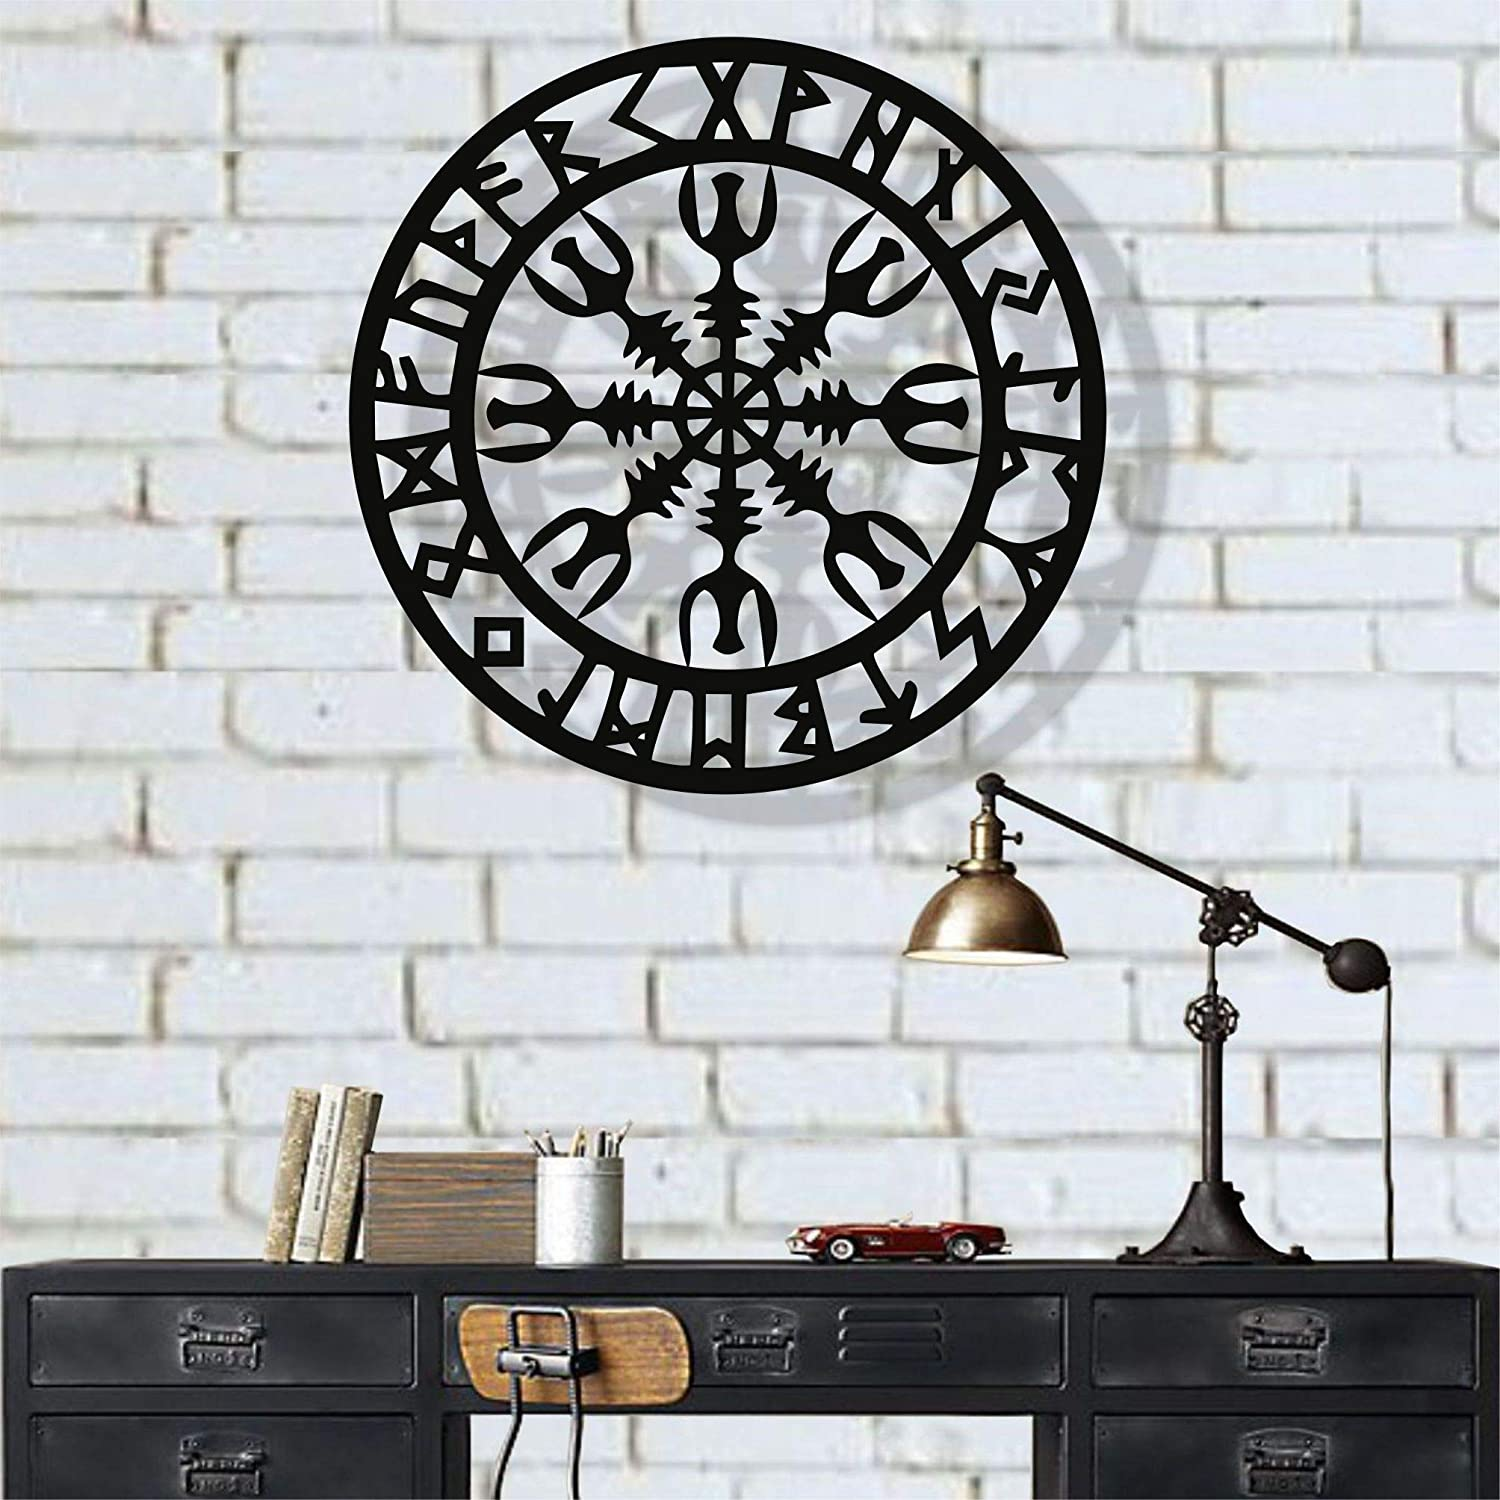 "DEKADRON Metal Wall Art, Metal Viking Decor, Nordic Mythology Vegvisir Runes and Symbols, Metal Wall Decor, Home Decor, Interior Decoration (18"" W x 18"" H / 45x45 cm)"